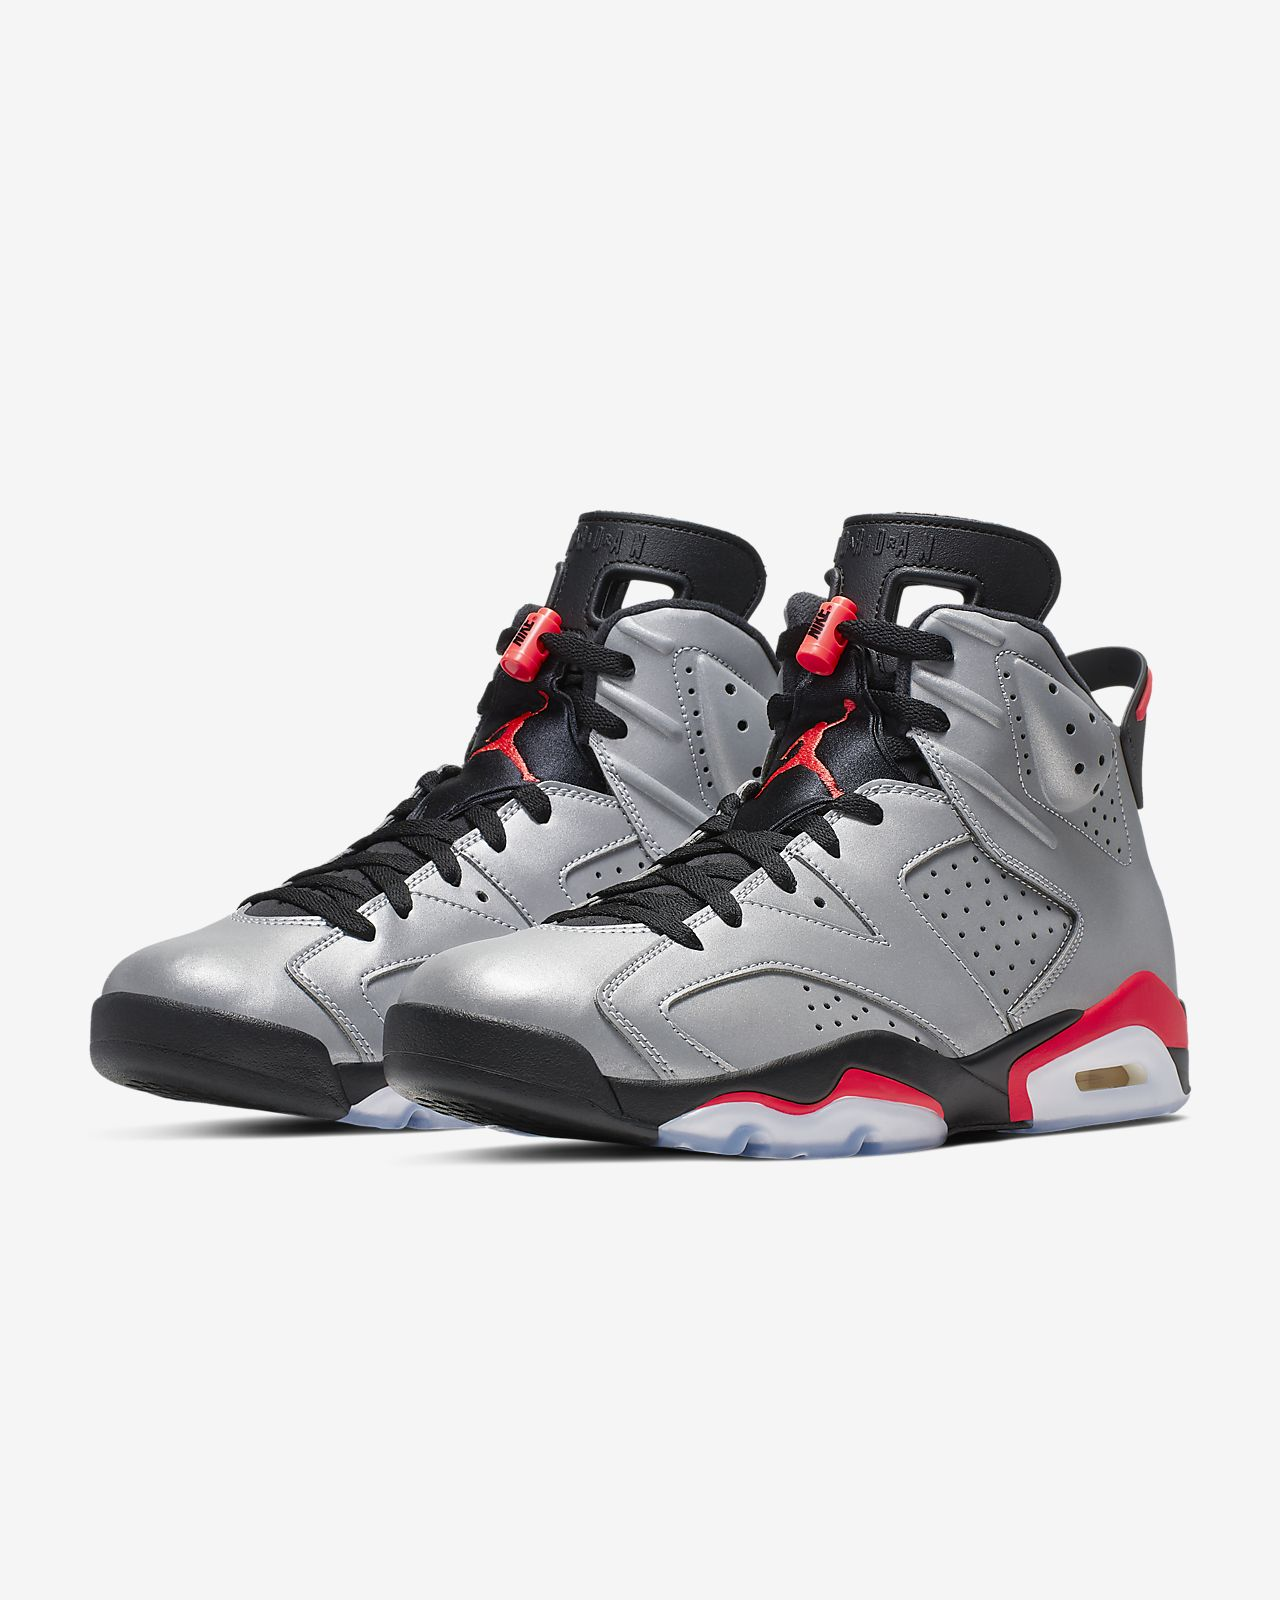 innovative design 9385c b667a Air Jordan 6 Retro SP Men's Shoe